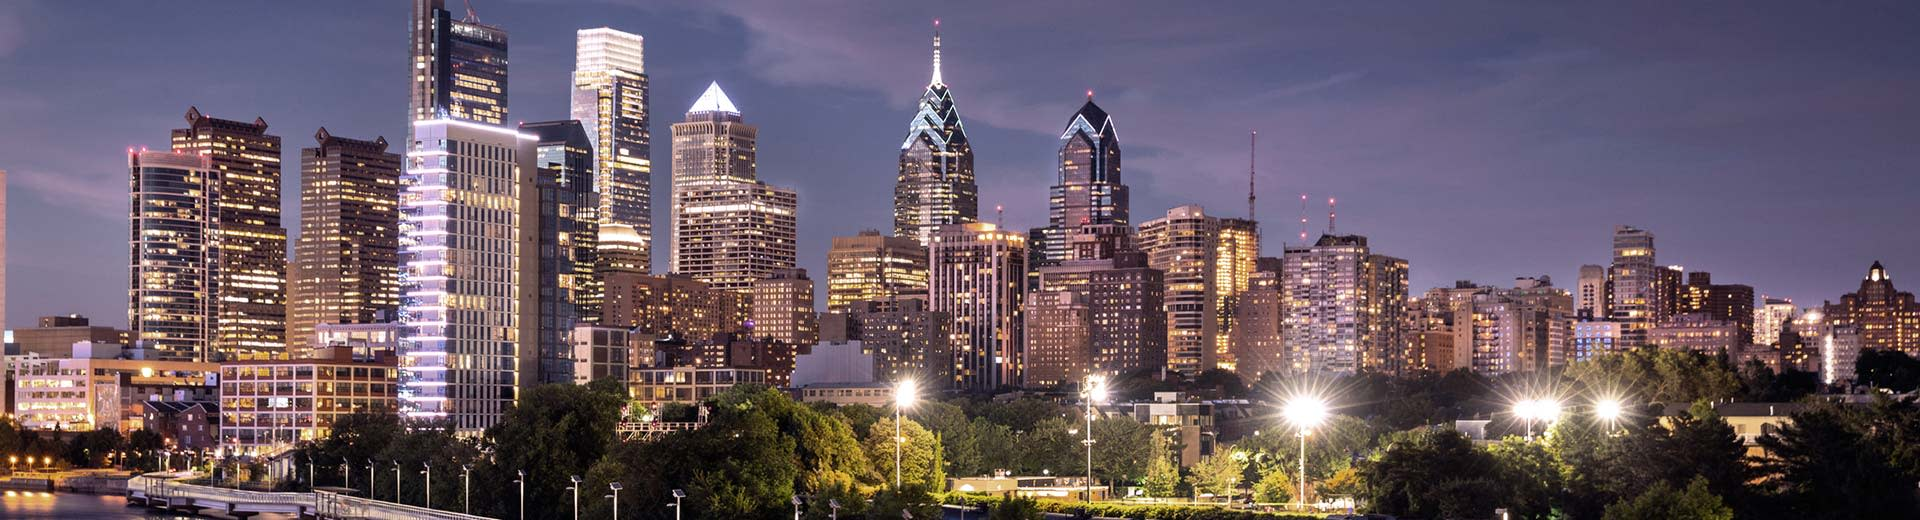 The high-rising Philadelphia skyline at night illuminates the dark sky above